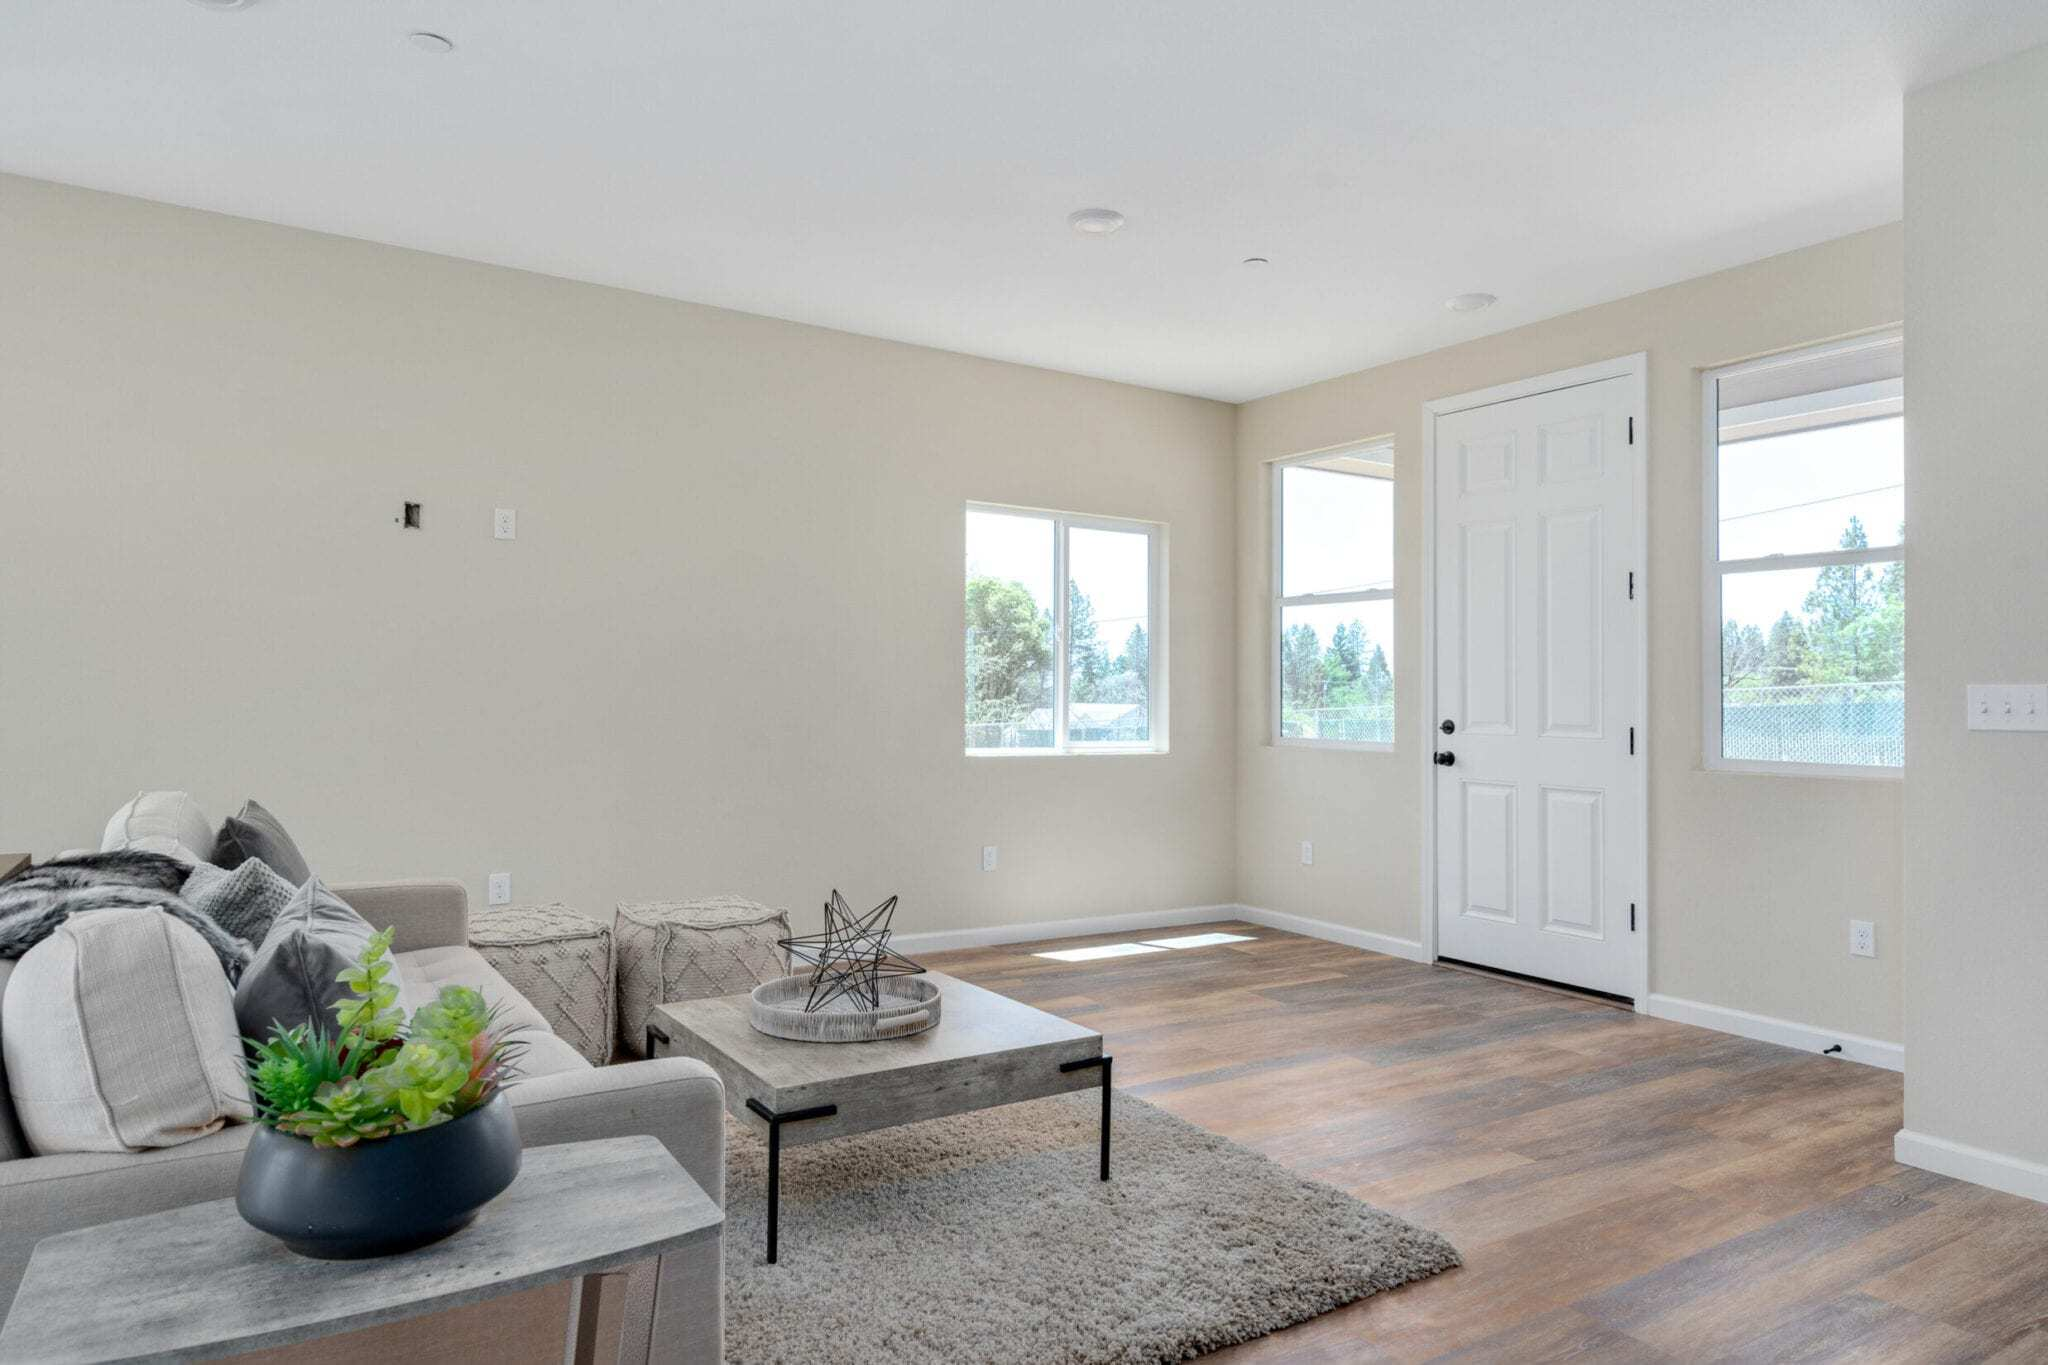 Living Area featured in the 1488 Bille Rd By Silvermark Luxury Homes in Chico, CA